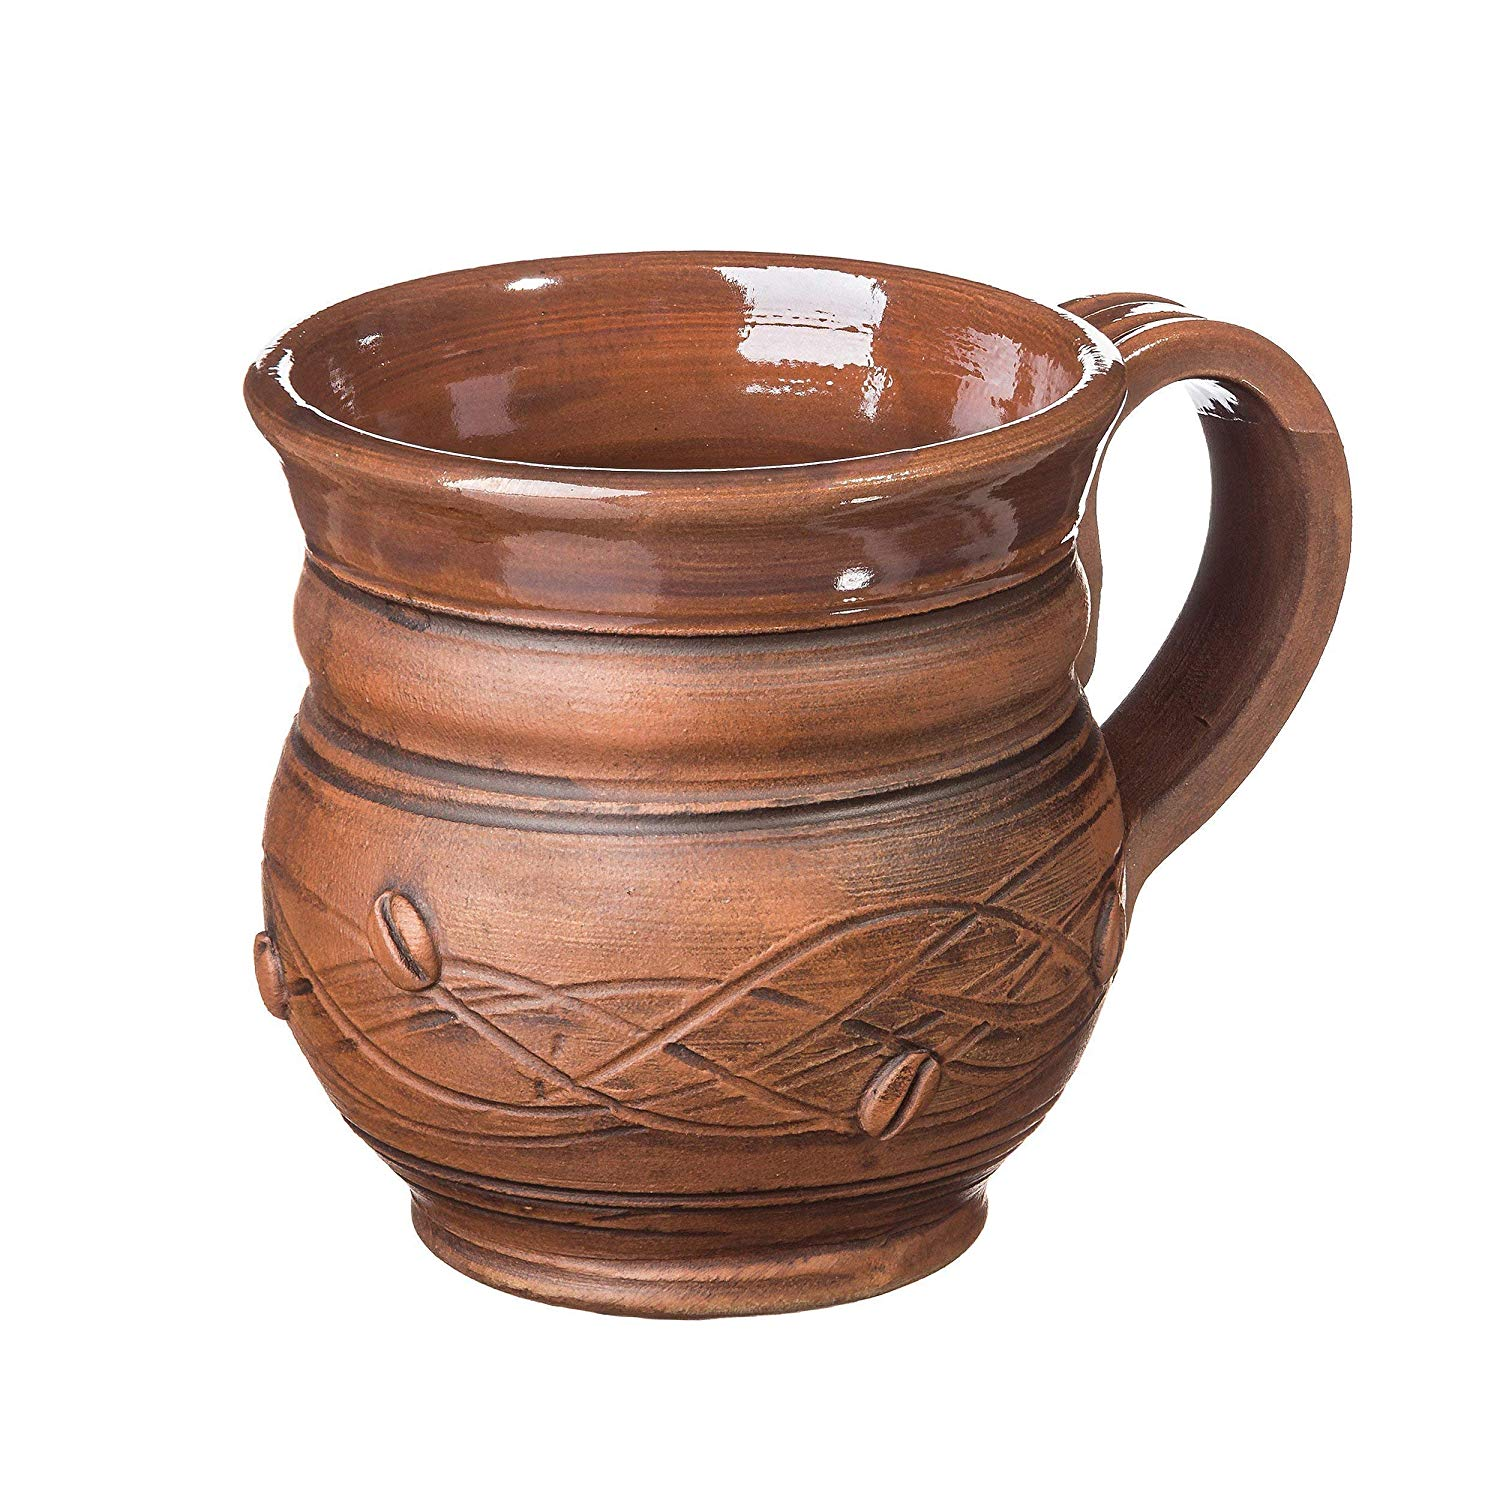 Rustic Ceramic Mug 8.5 oz Handmade Eco Friendly Drinkware